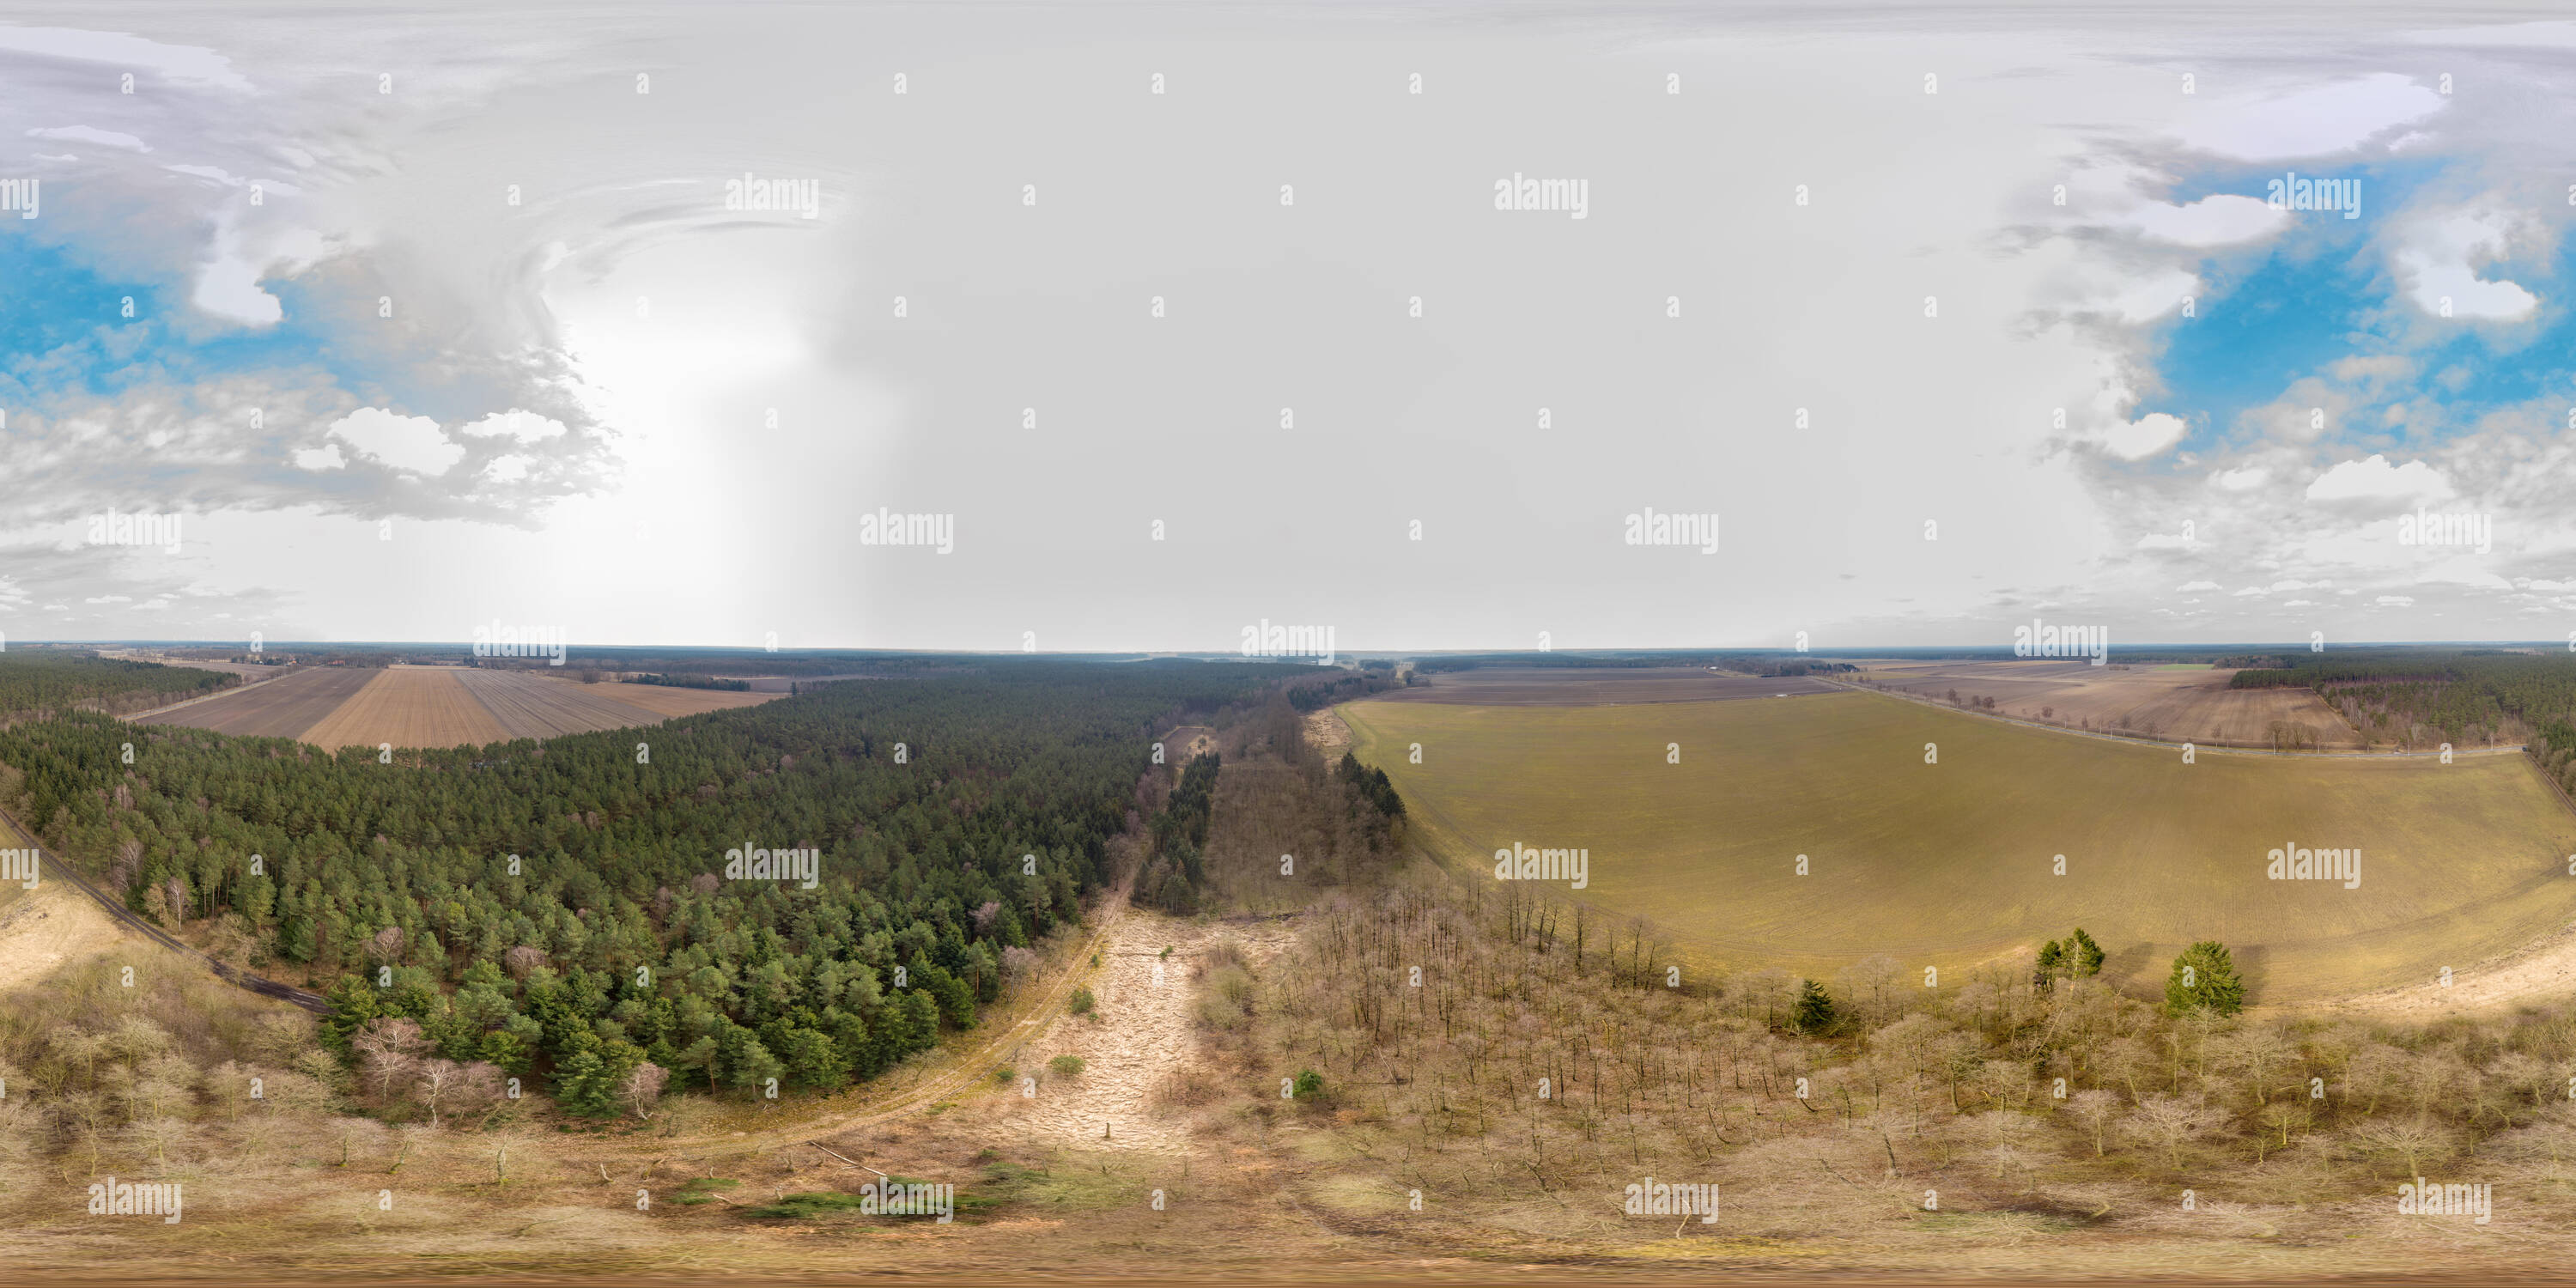 Spherical panorama from aerial photos of a forest area with dead trees between agricultural areas. - Stock Image